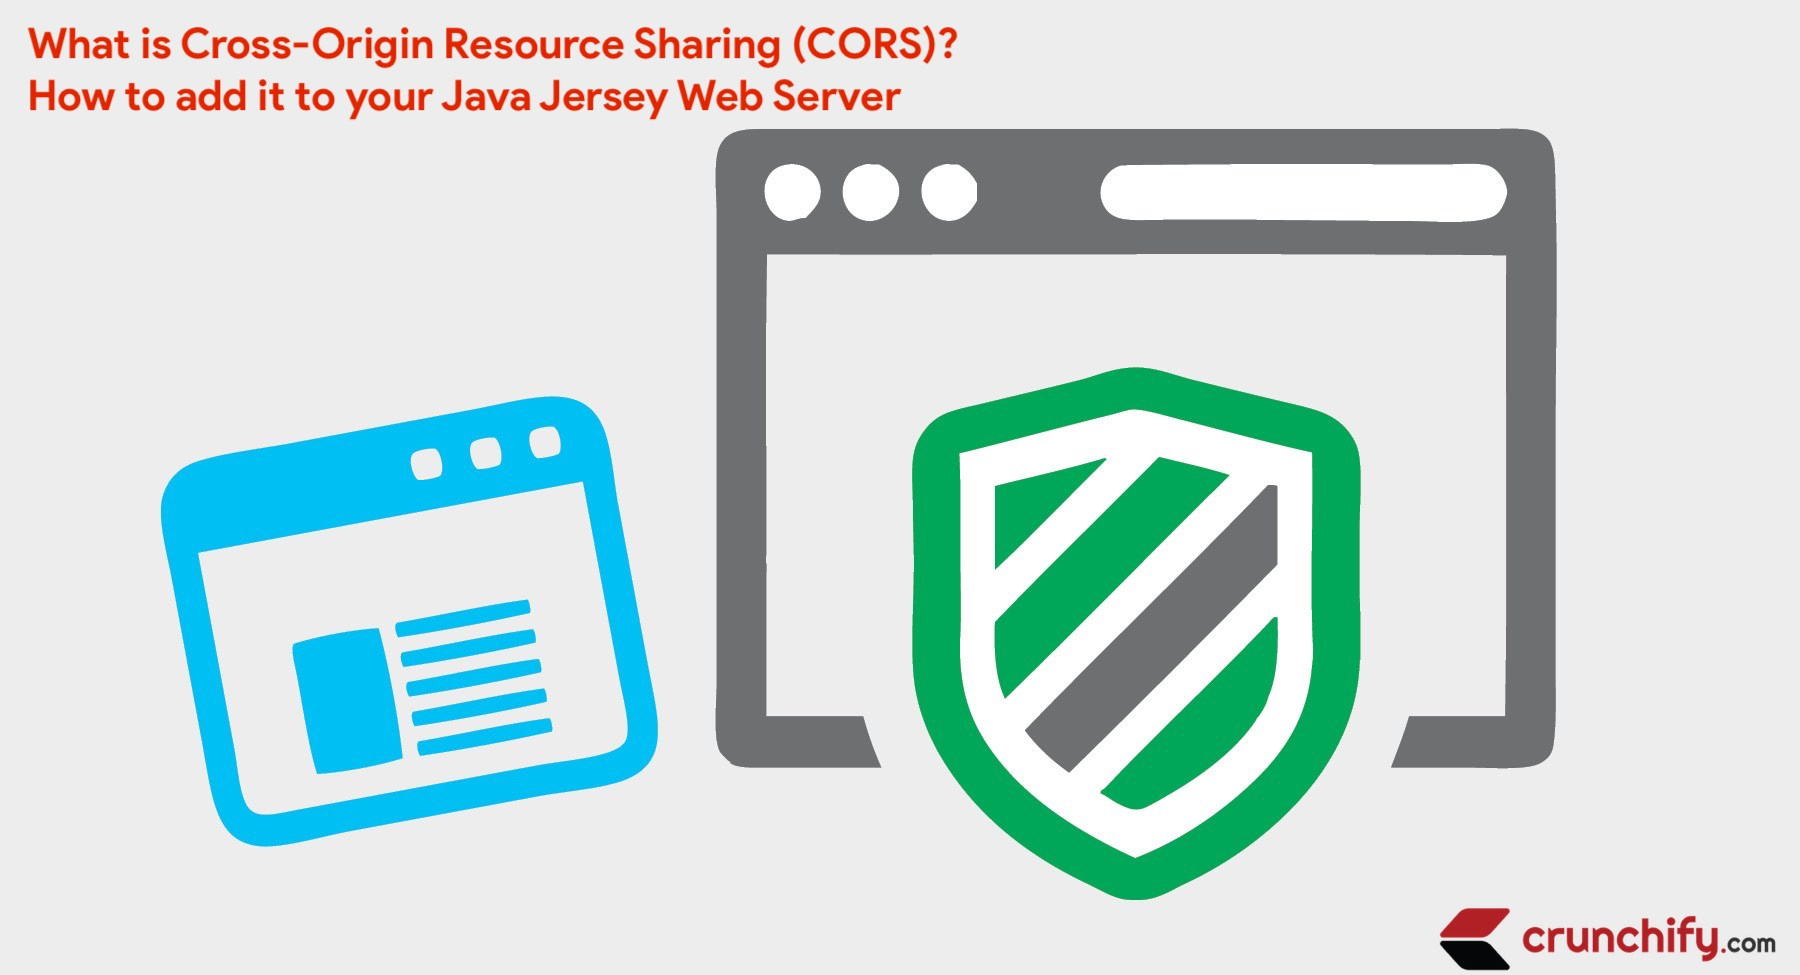 What is Cross-Origin Resource Sharing (CORS) - How to add it